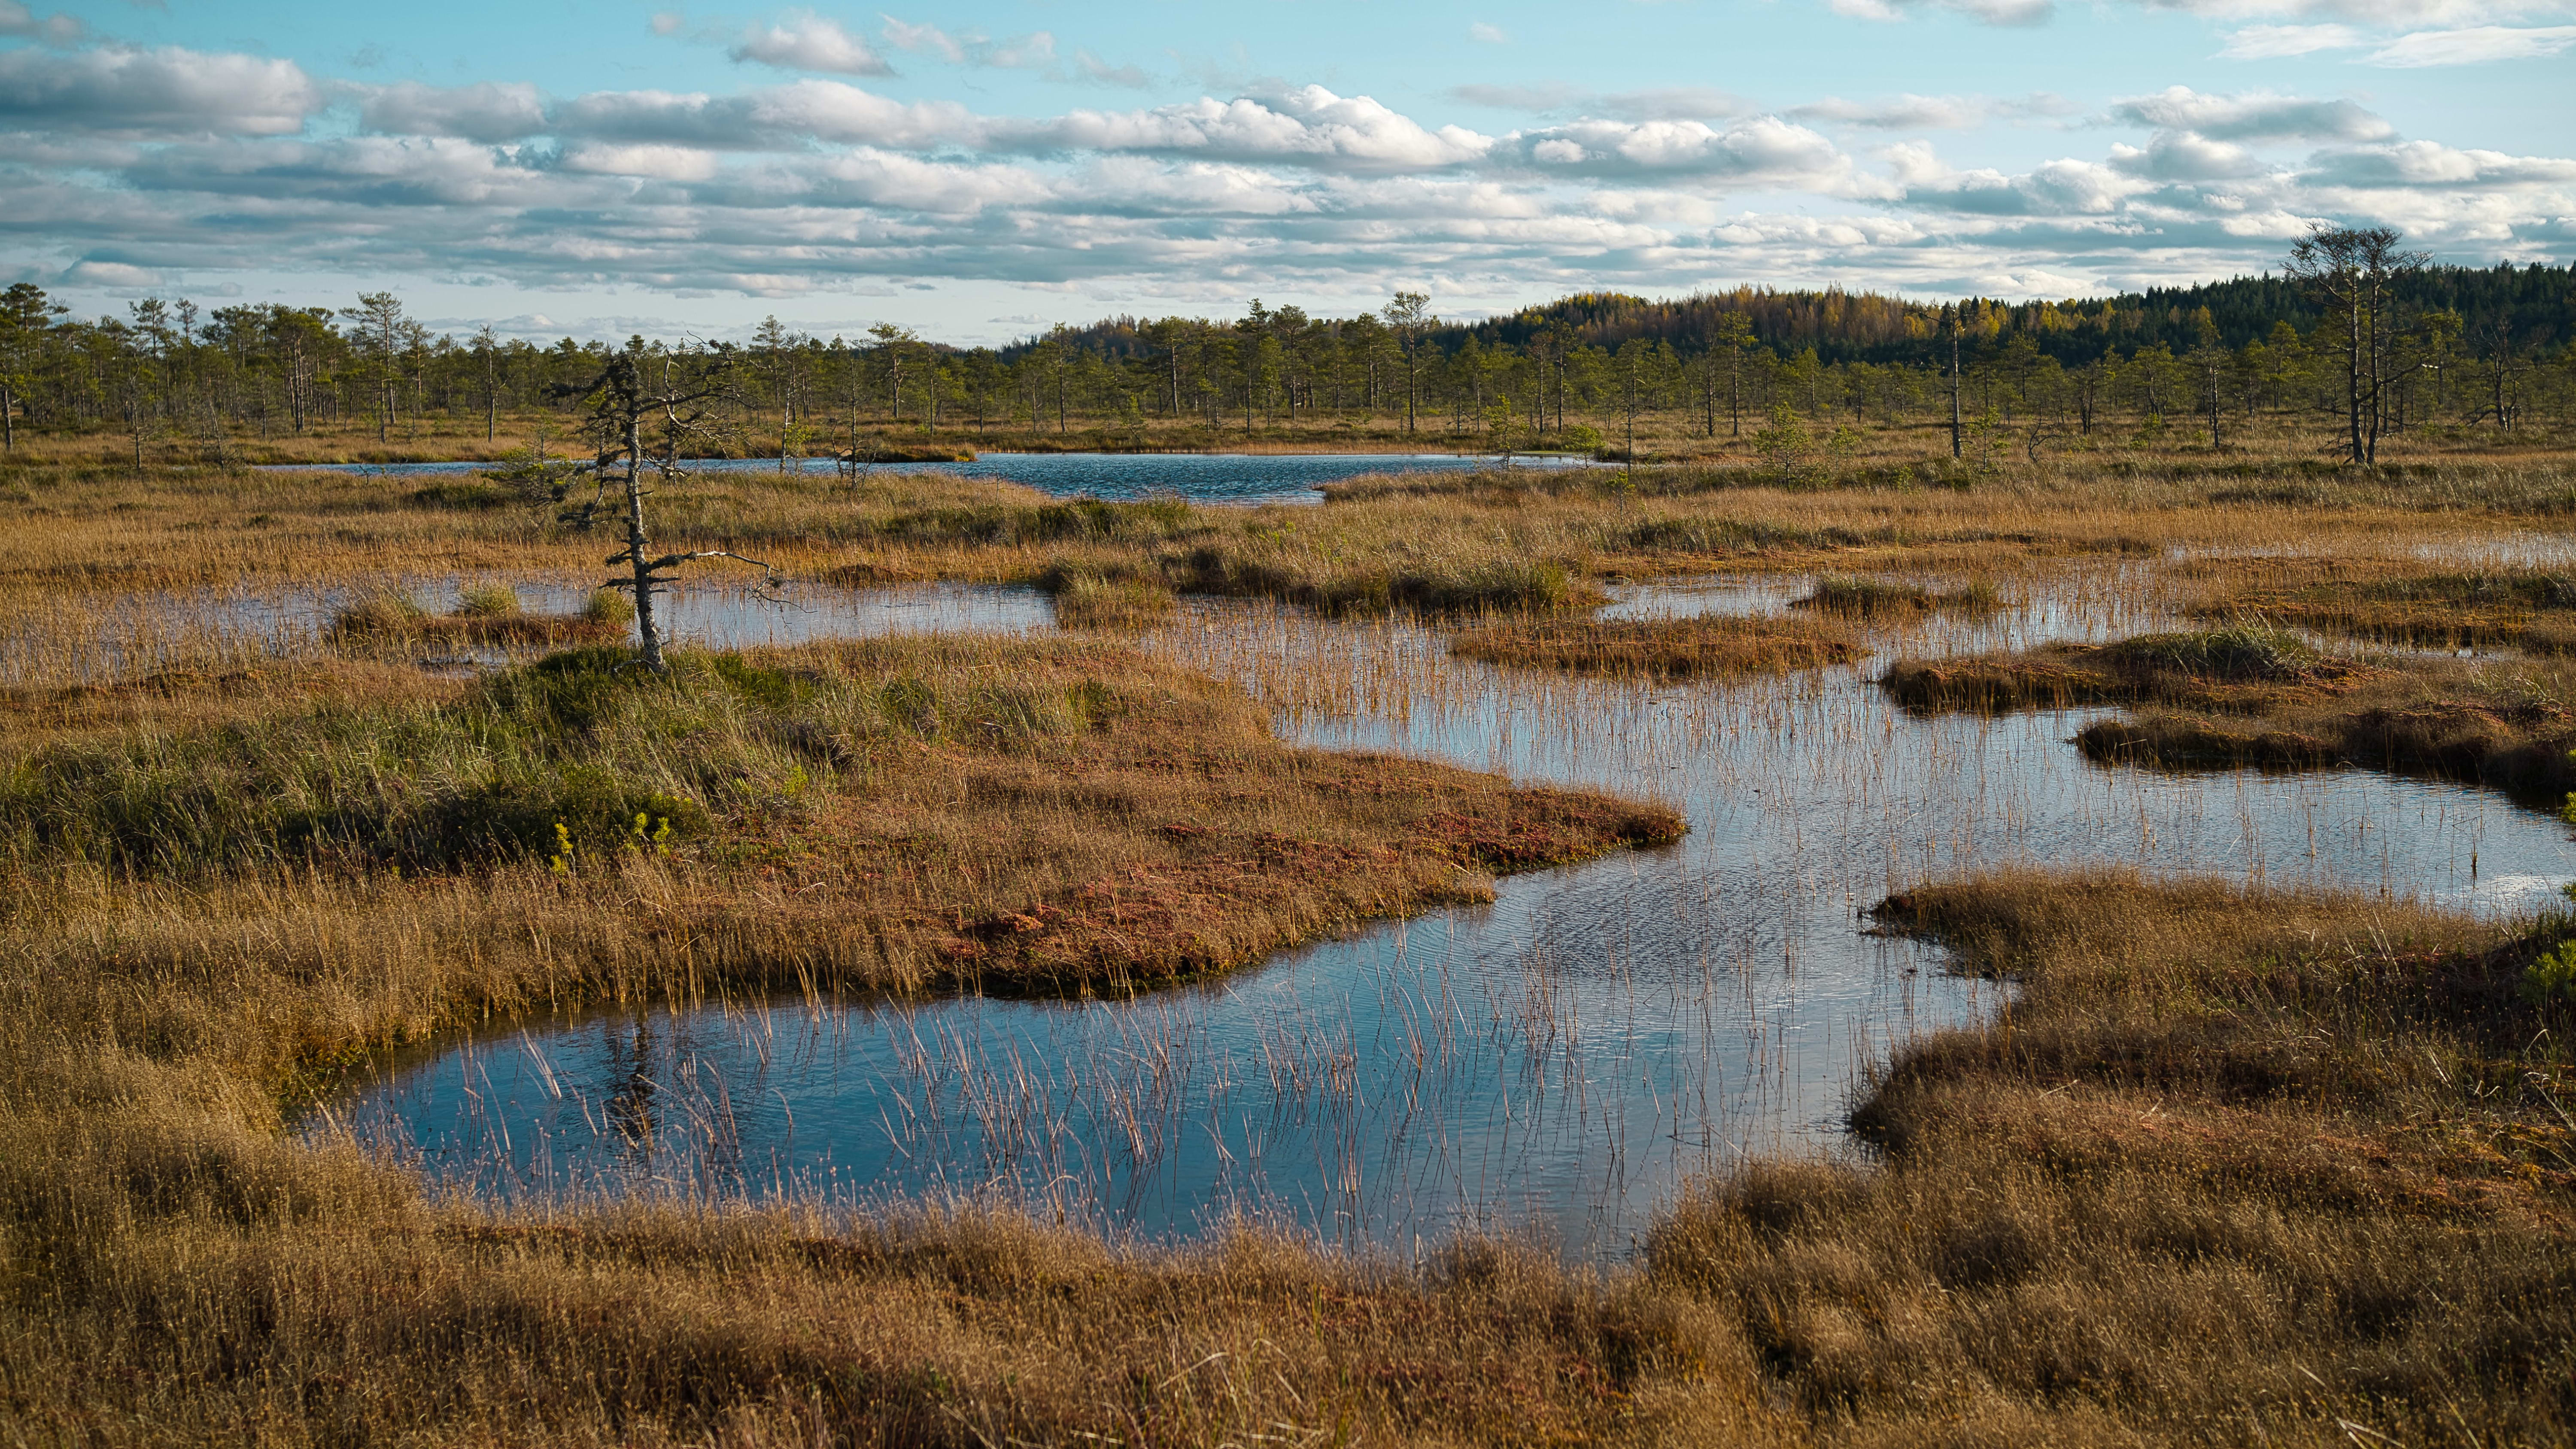 WaterLANDS: New European Green Deal project launched to lead largescale restoration of European wetlands